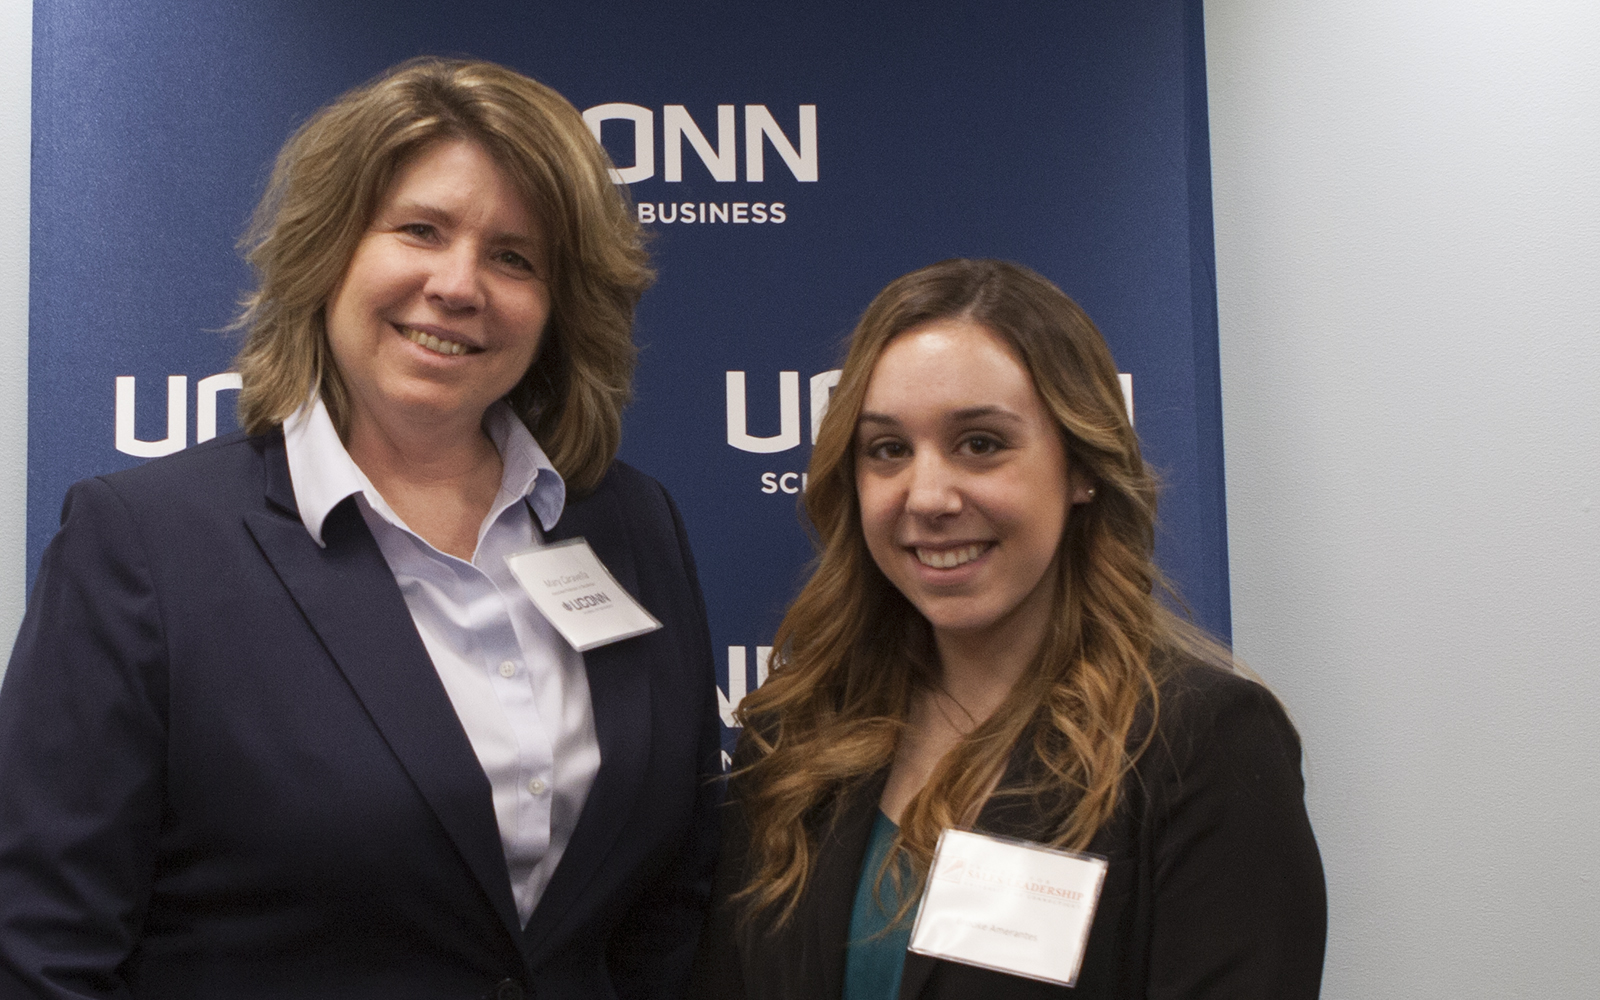 Professor Caravella and I at a Professional Sales Leadership event in March 2015. (Emily Vasington/UConn School of Business)